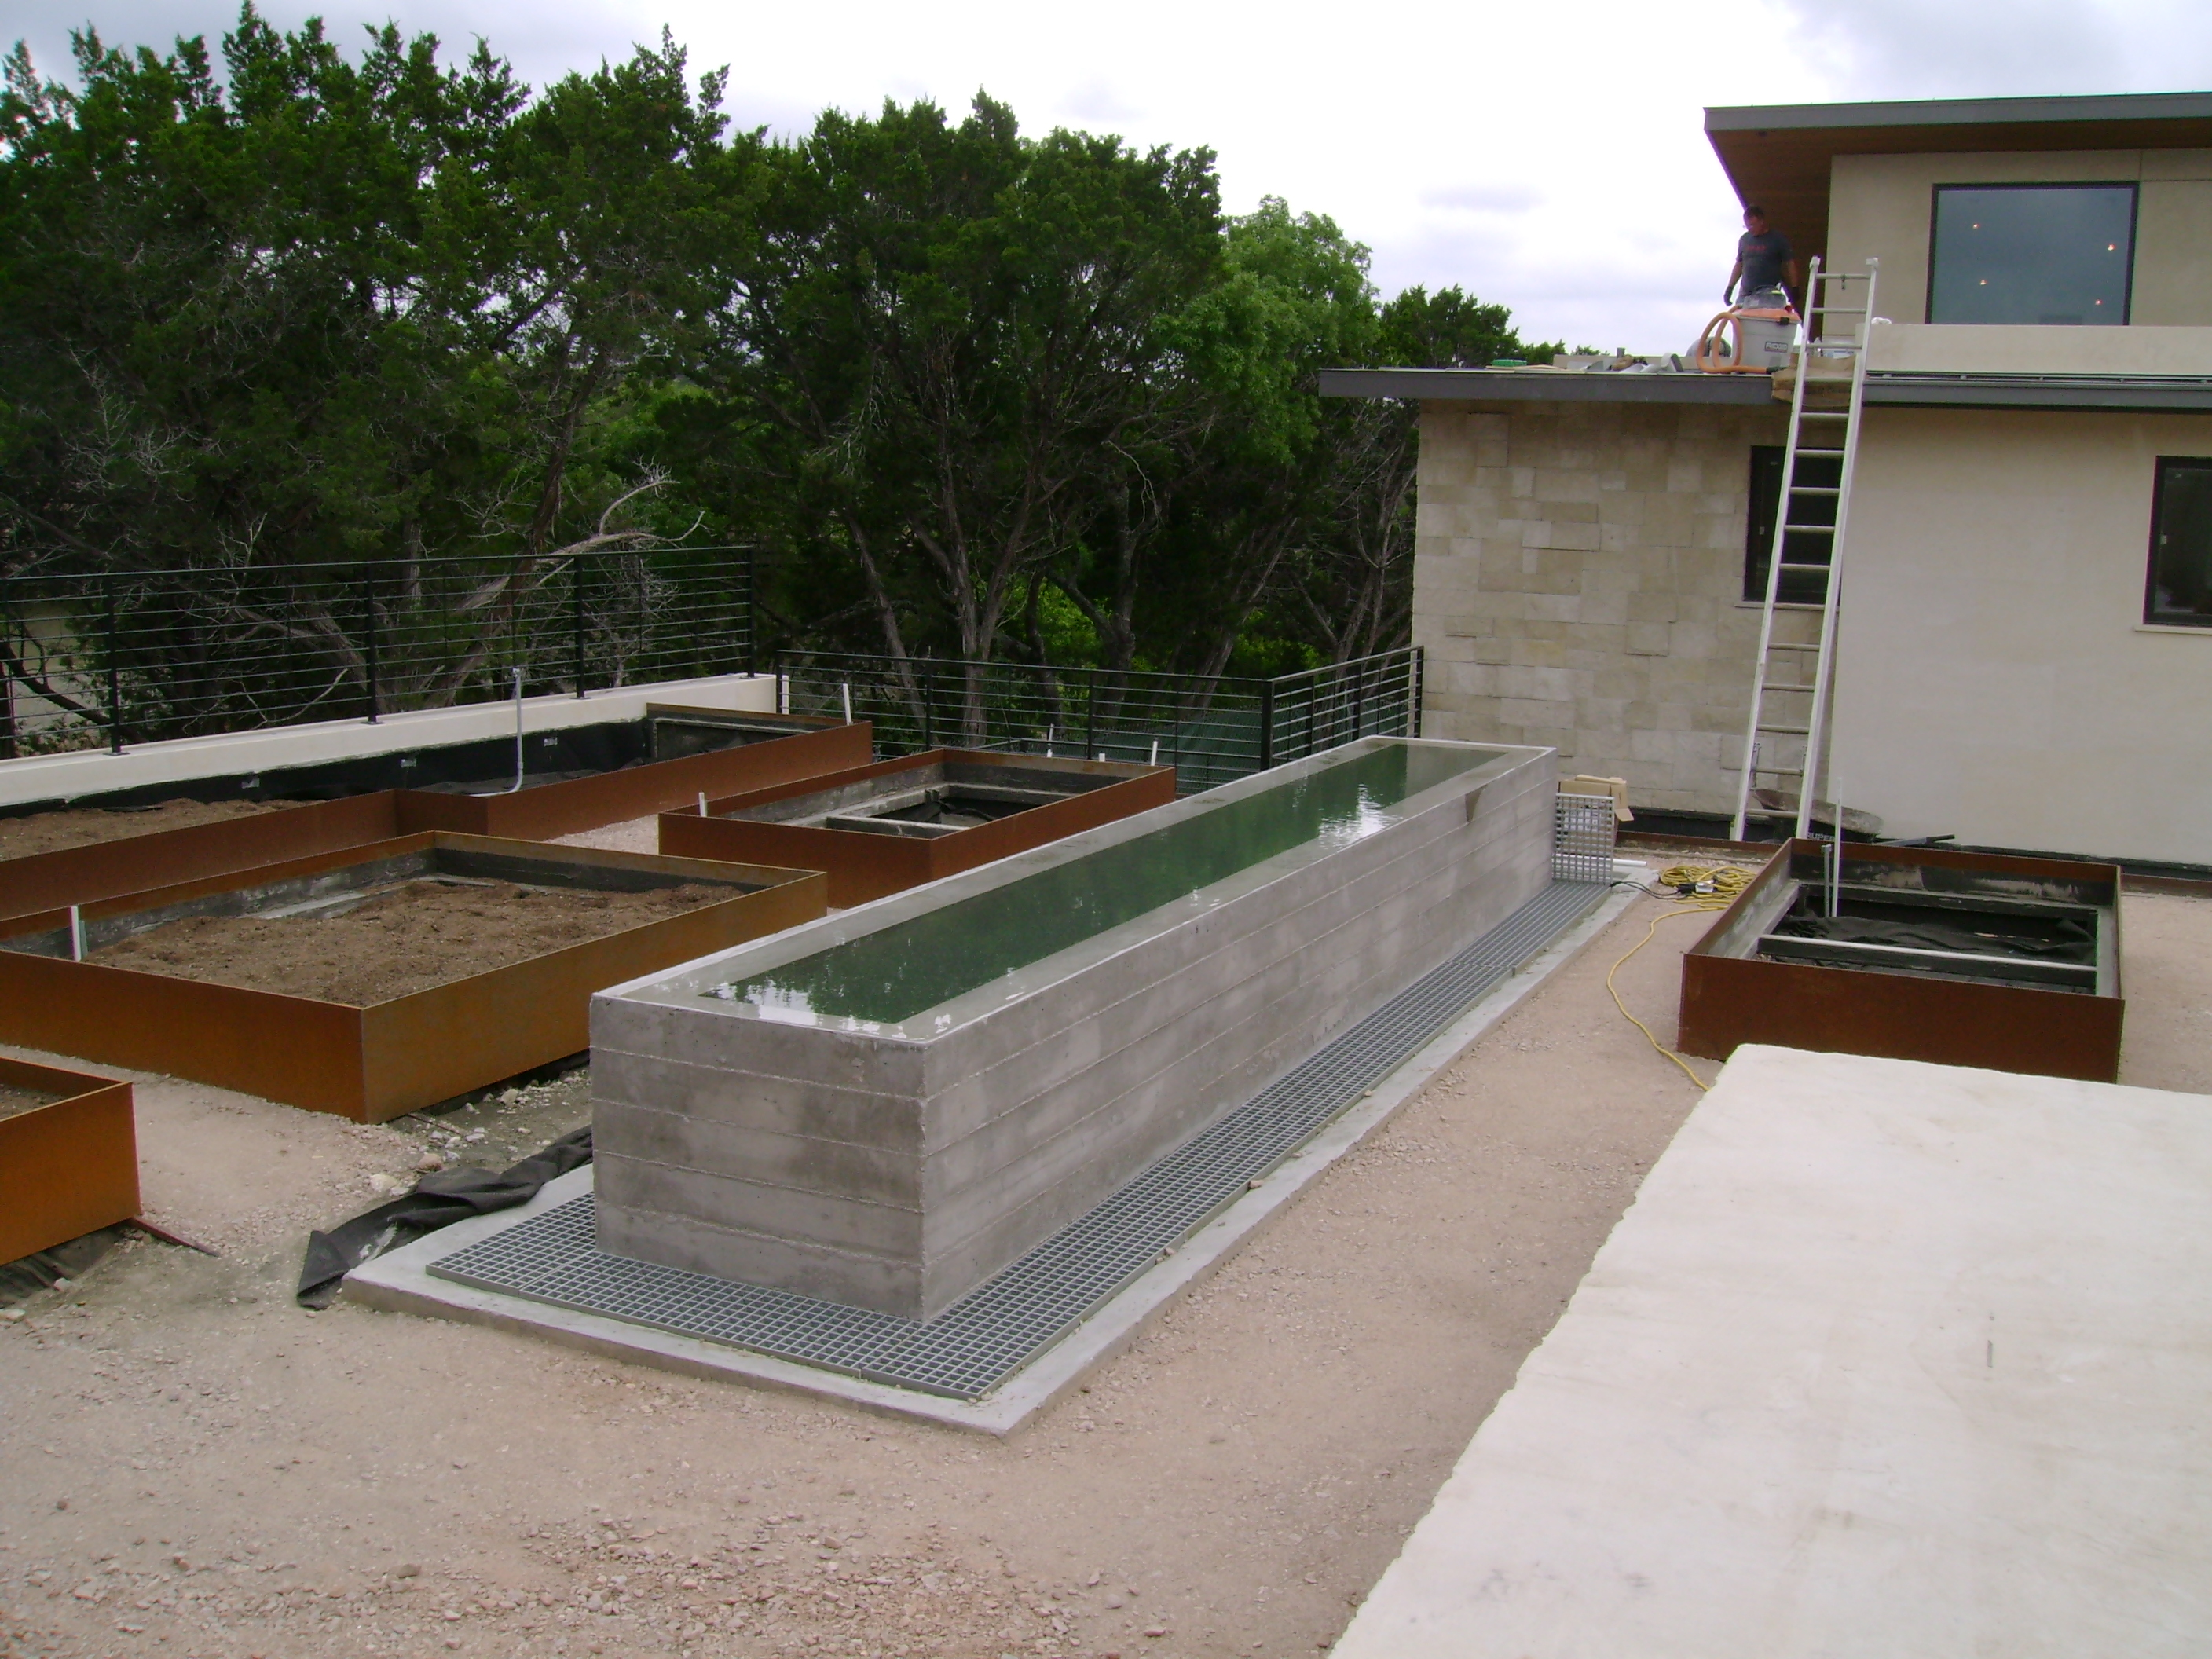 1000 Images About Edible Garden On Pinterest Gardens 400 x 300